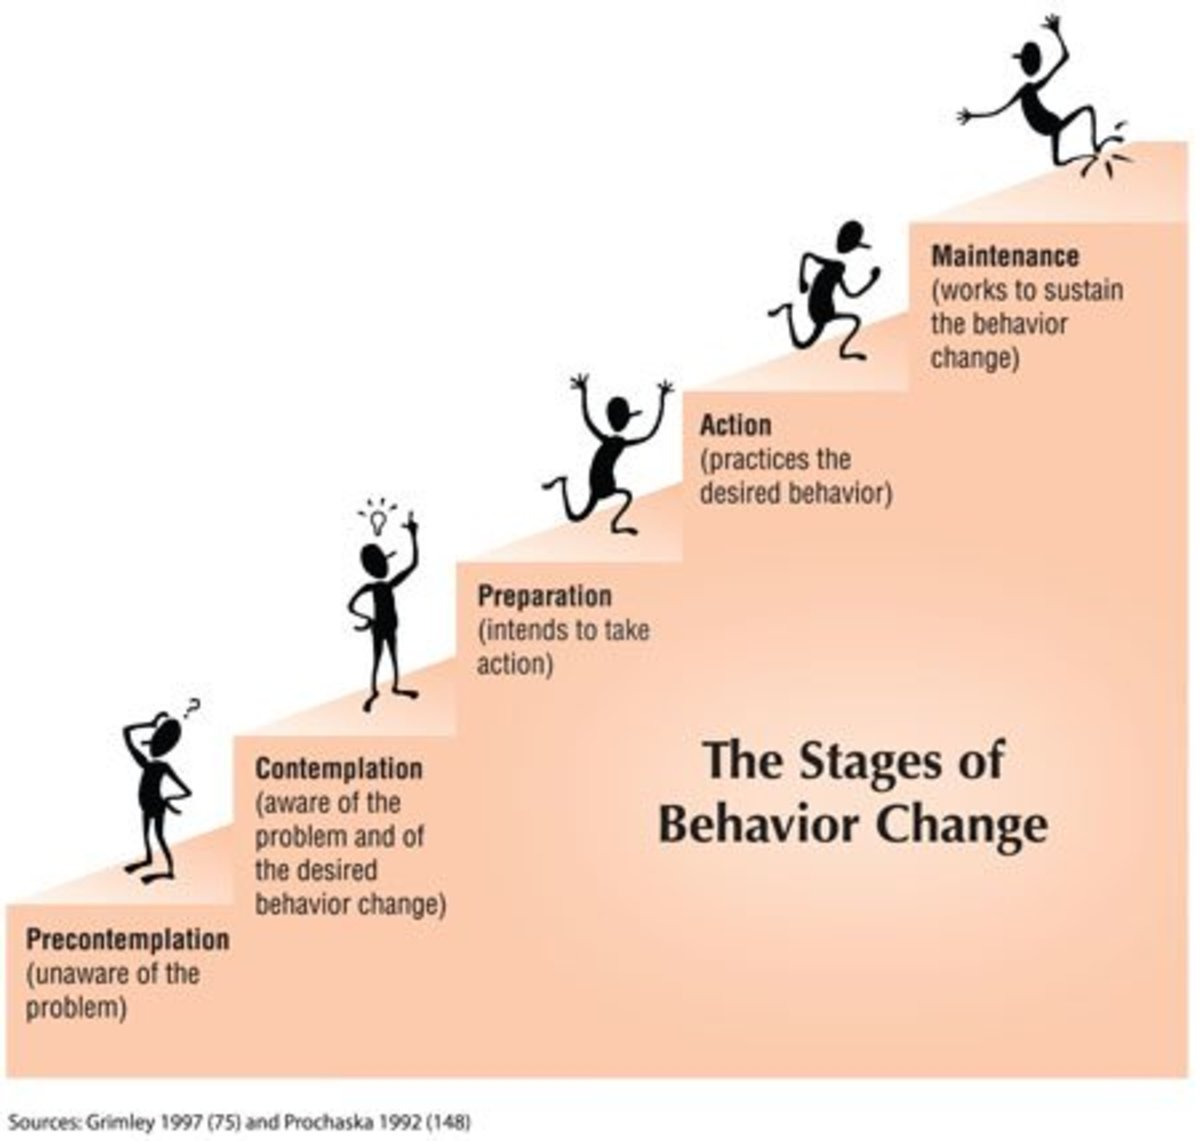 Where are you in the stages of behavior change?